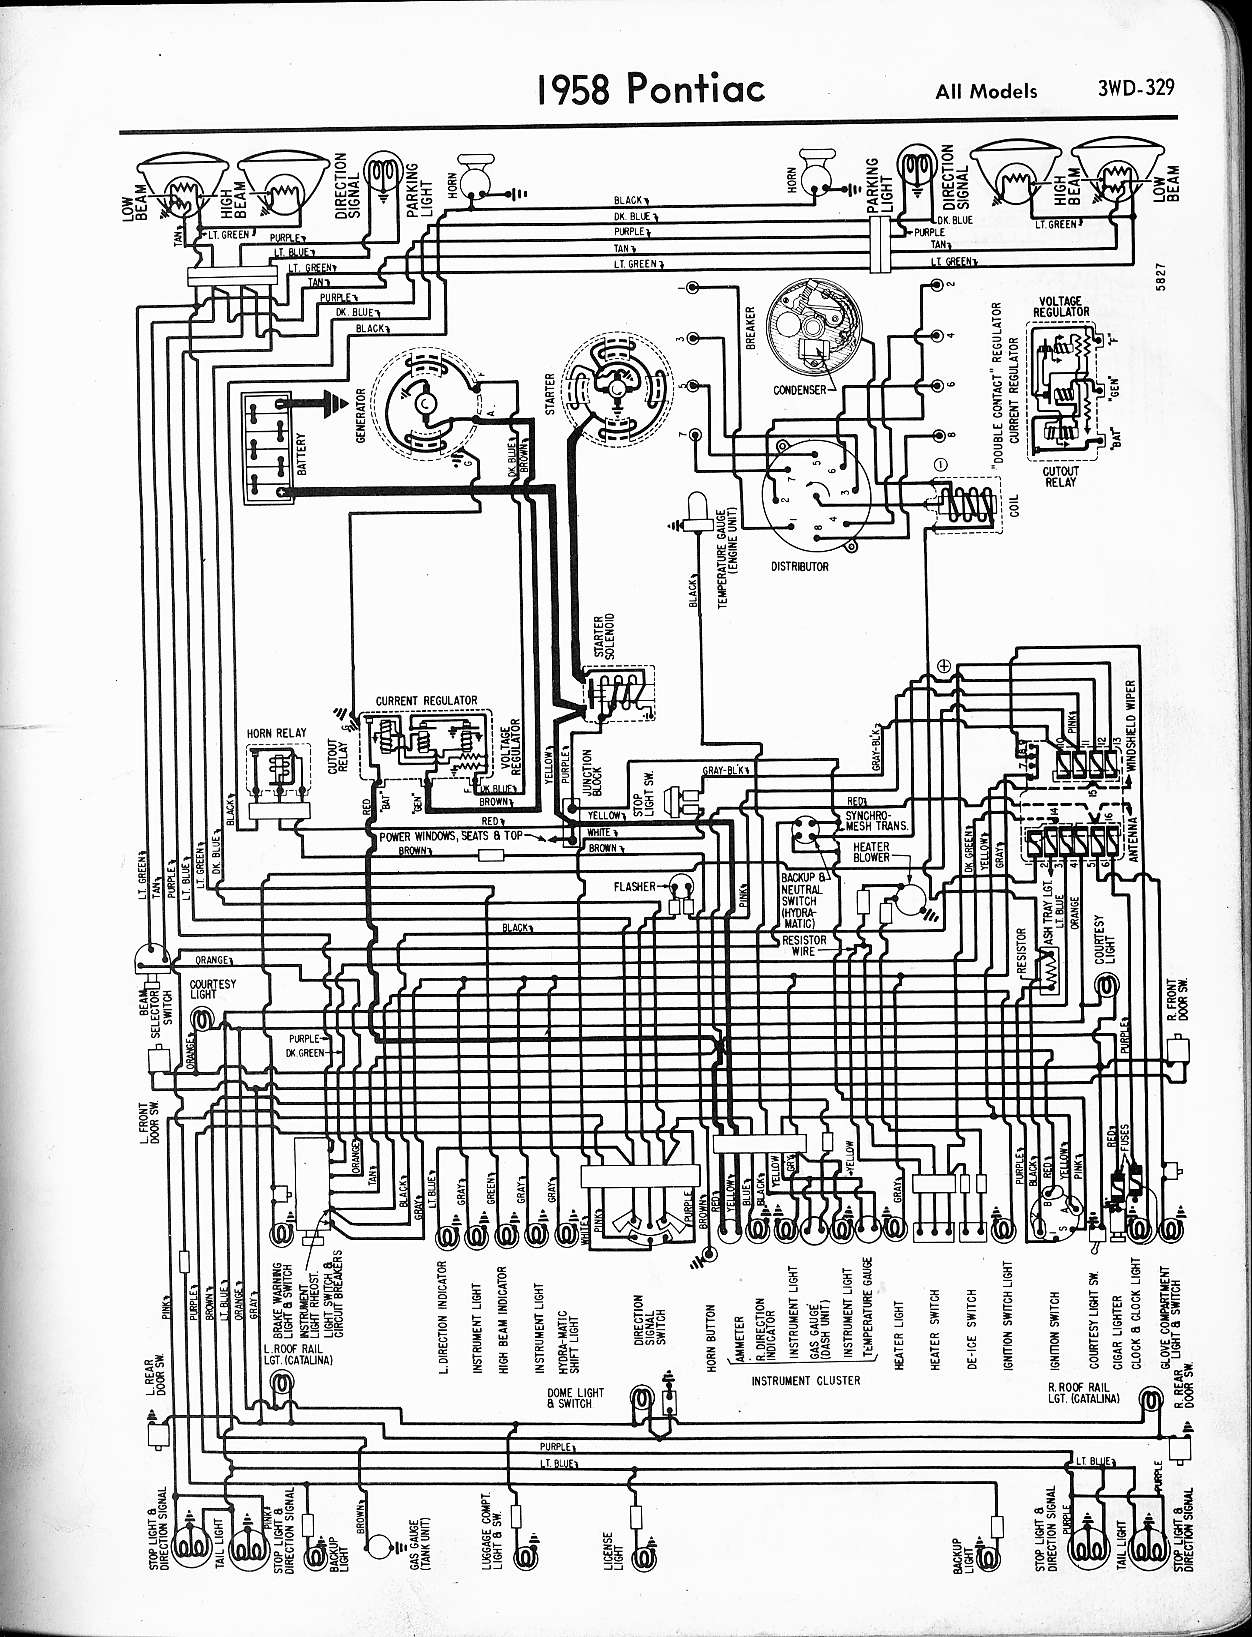 wallace racing wiring diagrams rh wallaceracing com Pontiac Sunfire Starter Wiring Diagram Pontiac Bonneville Wiring-Diagram